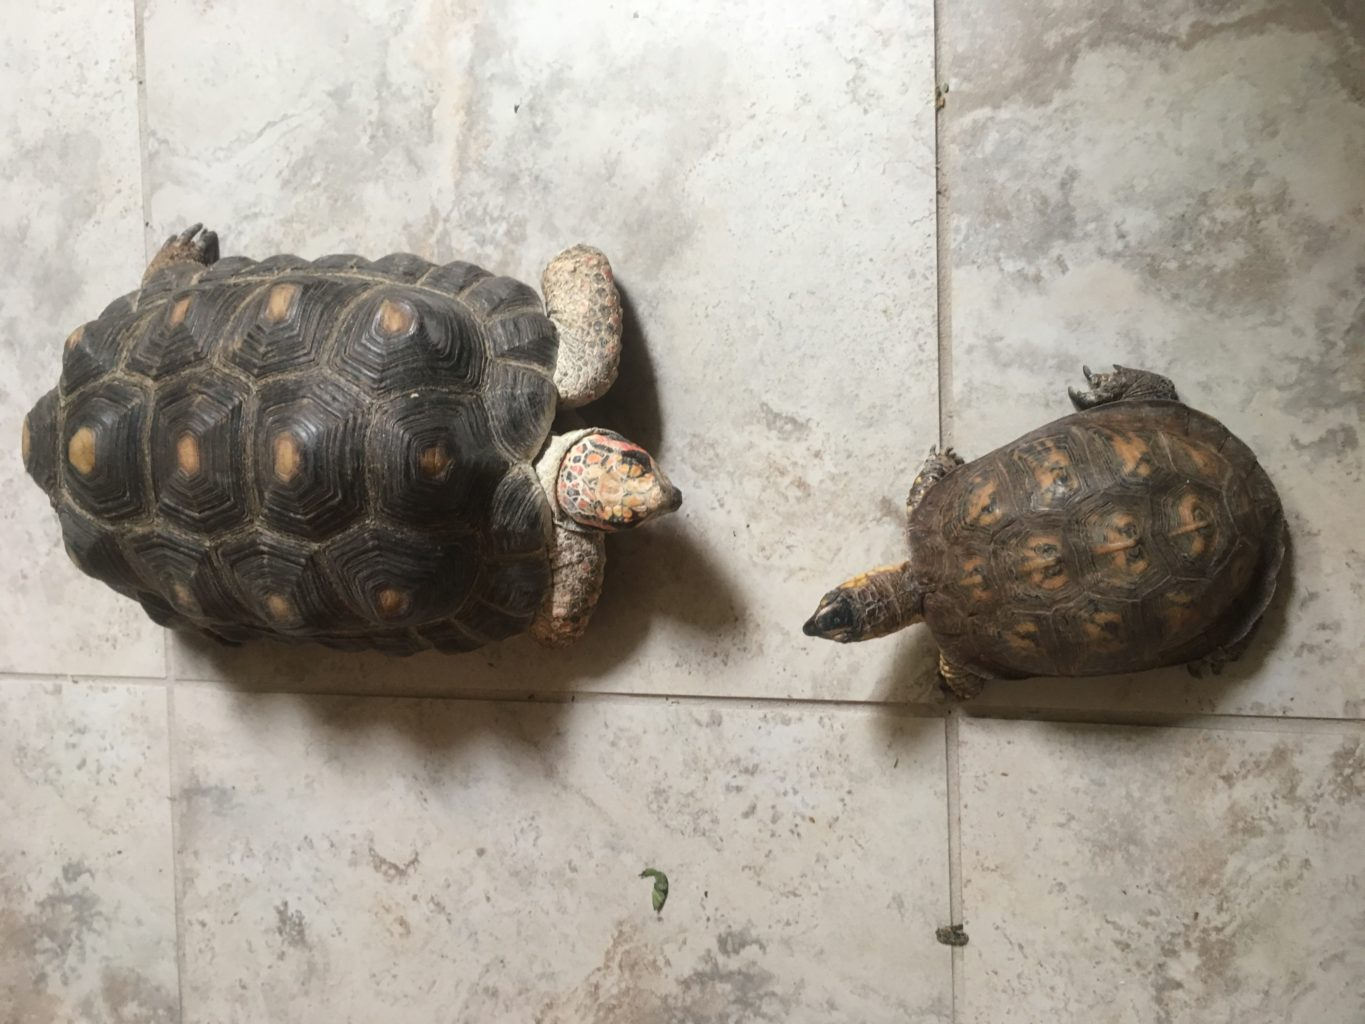 A red-foot tortoise faces an Eastern box turtle, on a tile floor.